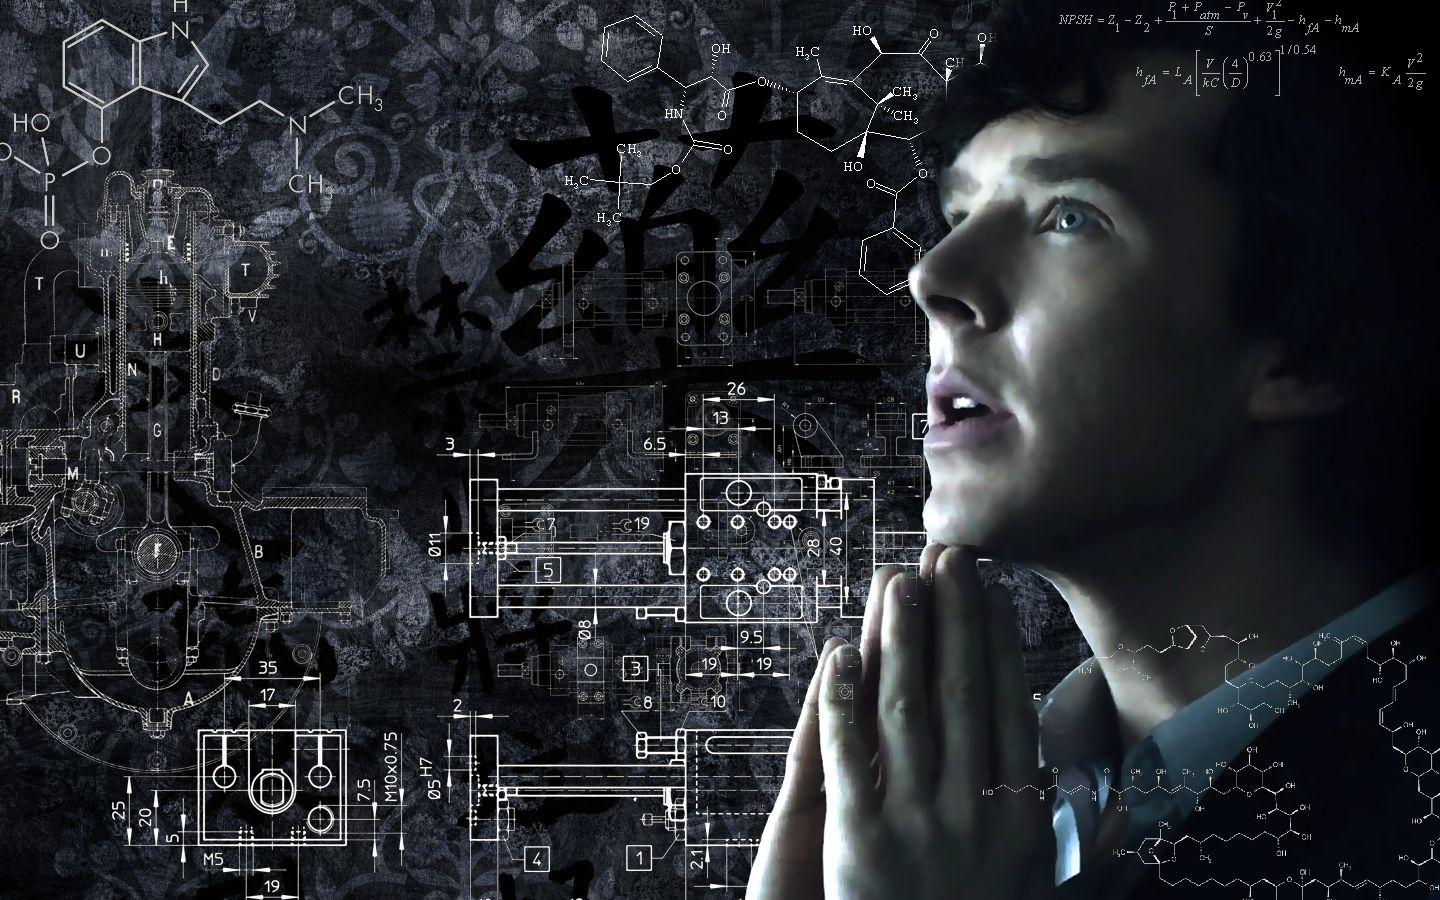 Sherlock Holmes Bbc Wallpapers Hd Wallpaper Cave